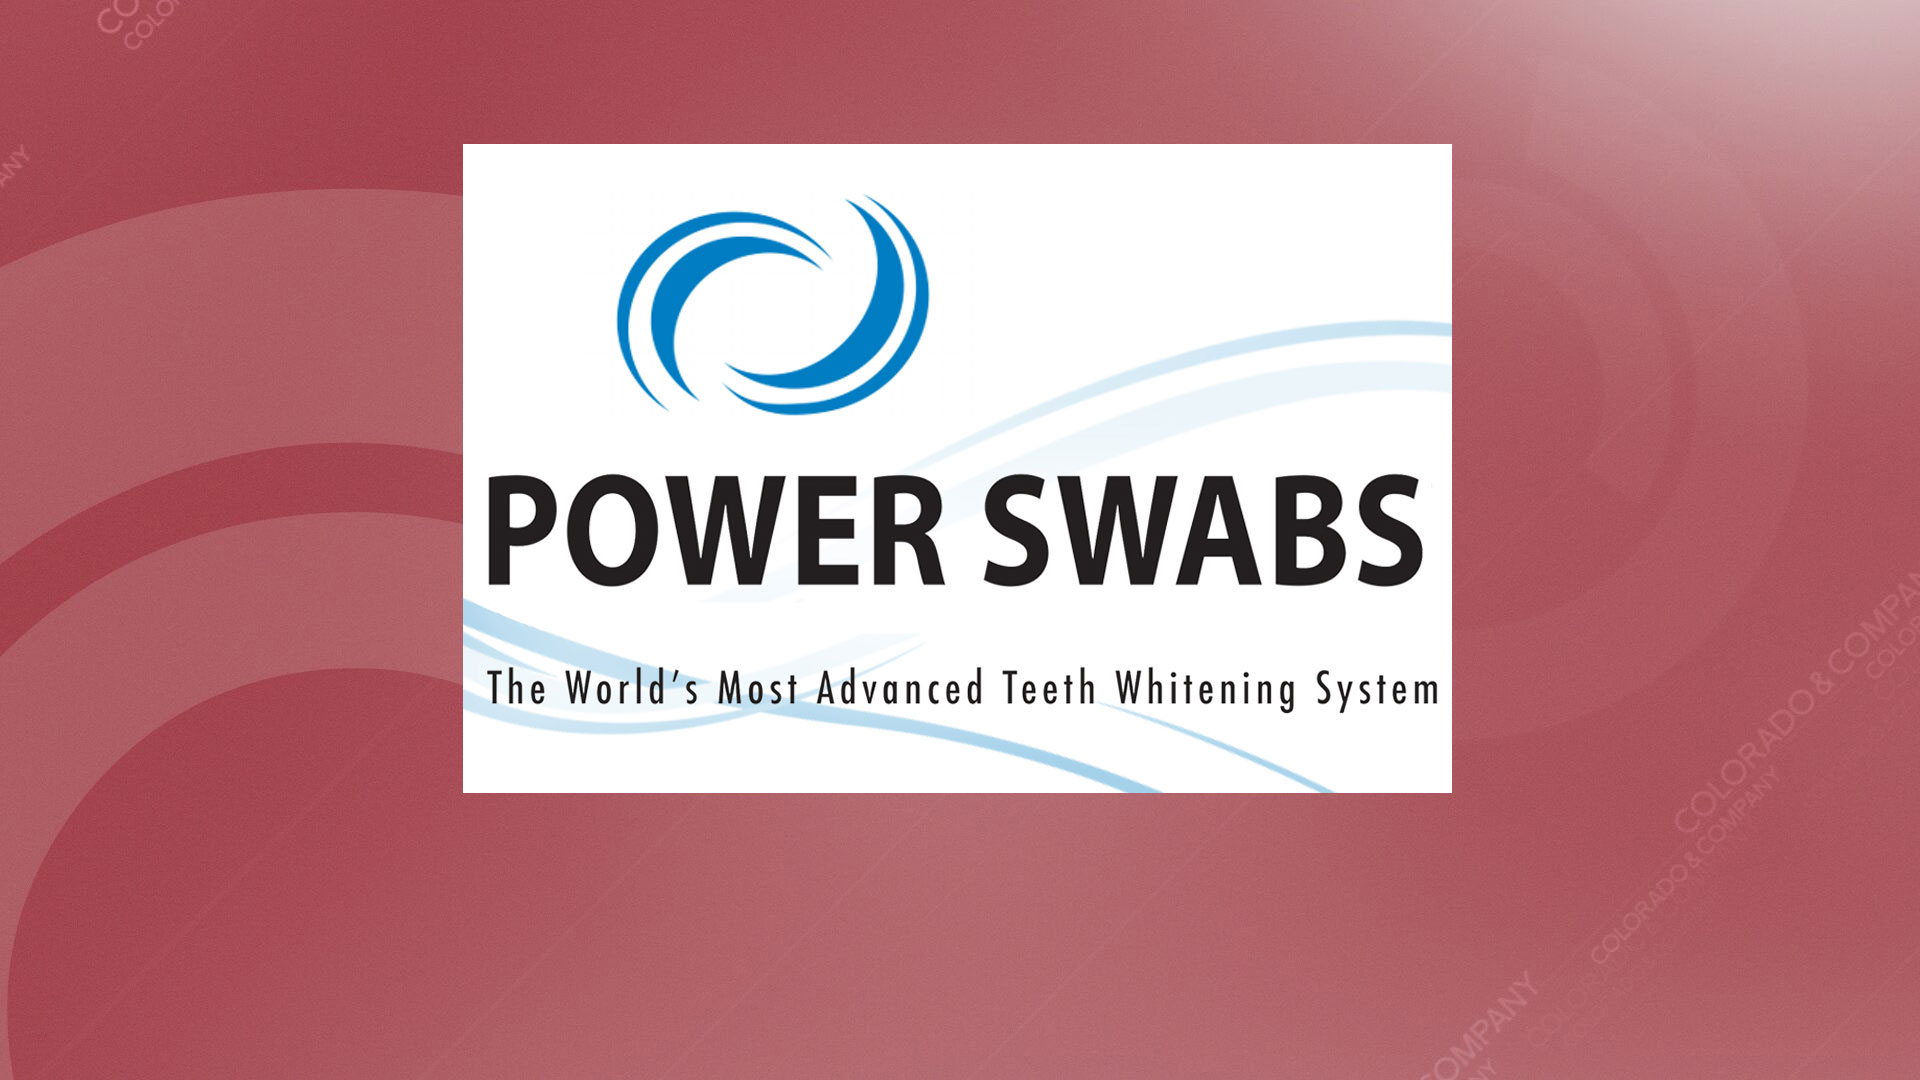 Feb 24,  · Power Swabs Review Conclusion. If you want a whiter, healthier smile there is no better online cosmetic store to visit than Power Swabs. This company is founded by one of the world's foremost experts on teeth whitening and dental health, Dr. Martin Giniger/